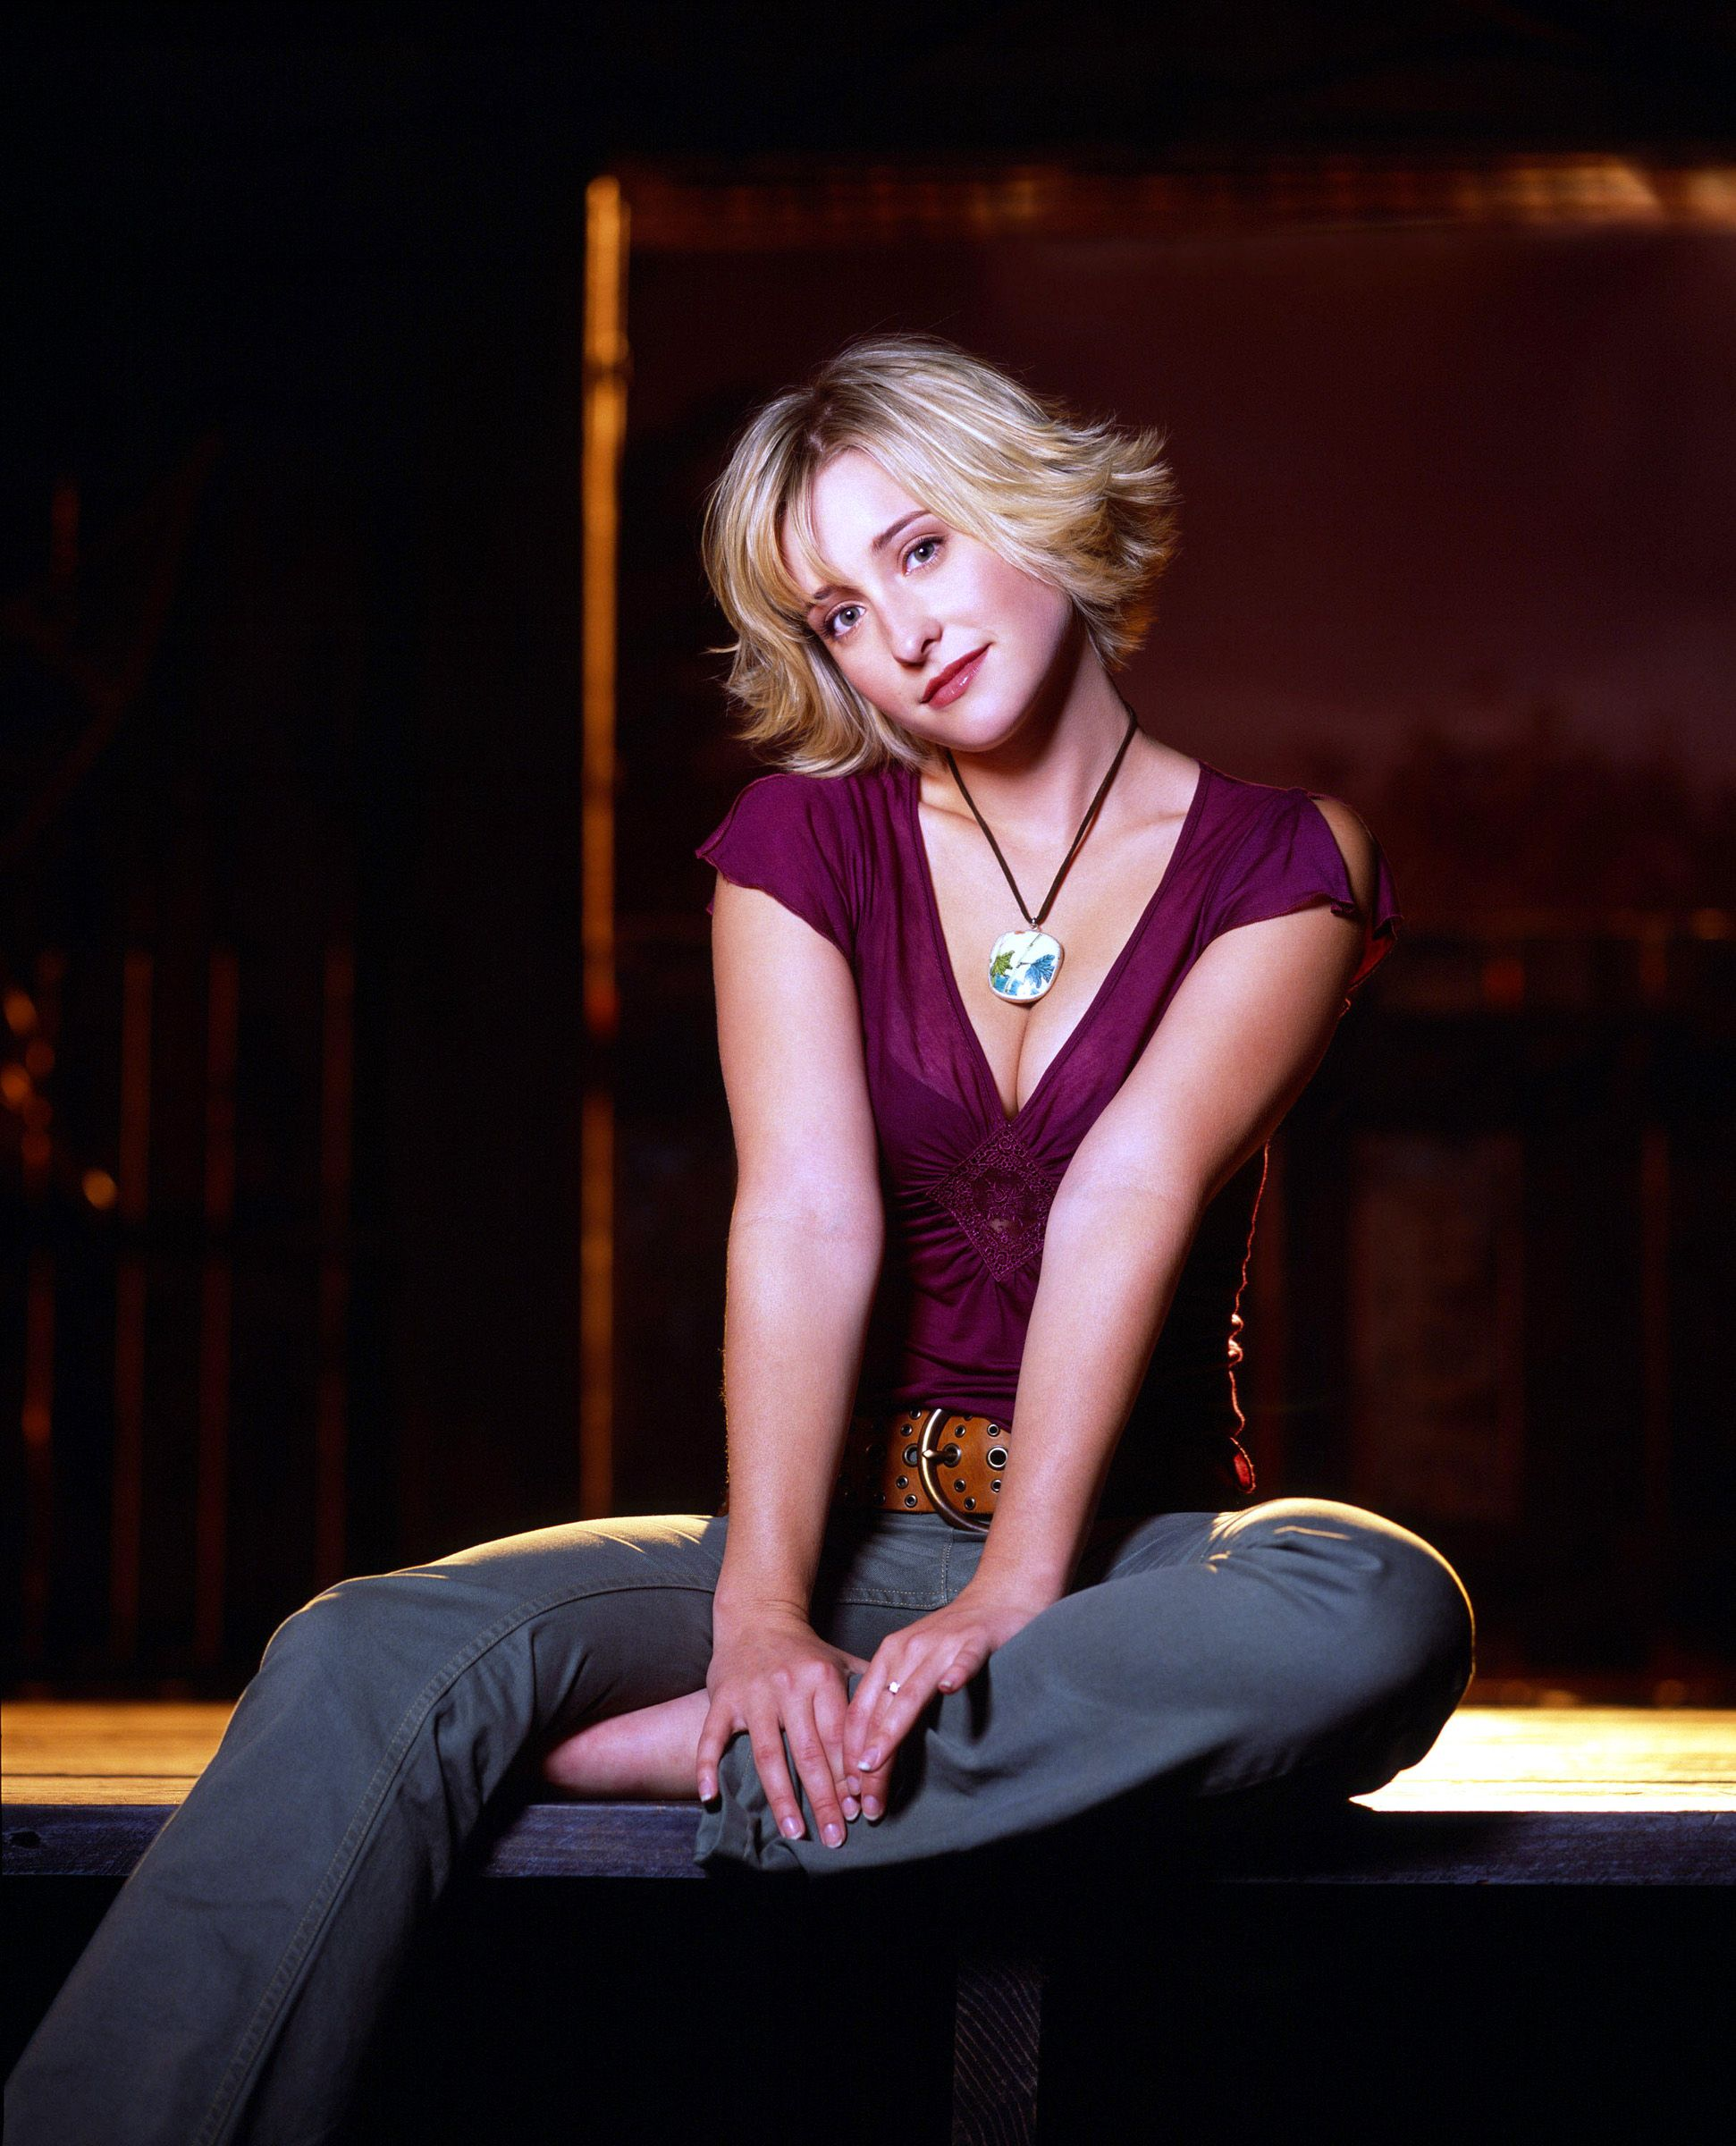 Allison Mack Porn Video smallville' actress allison mack arrested for role in